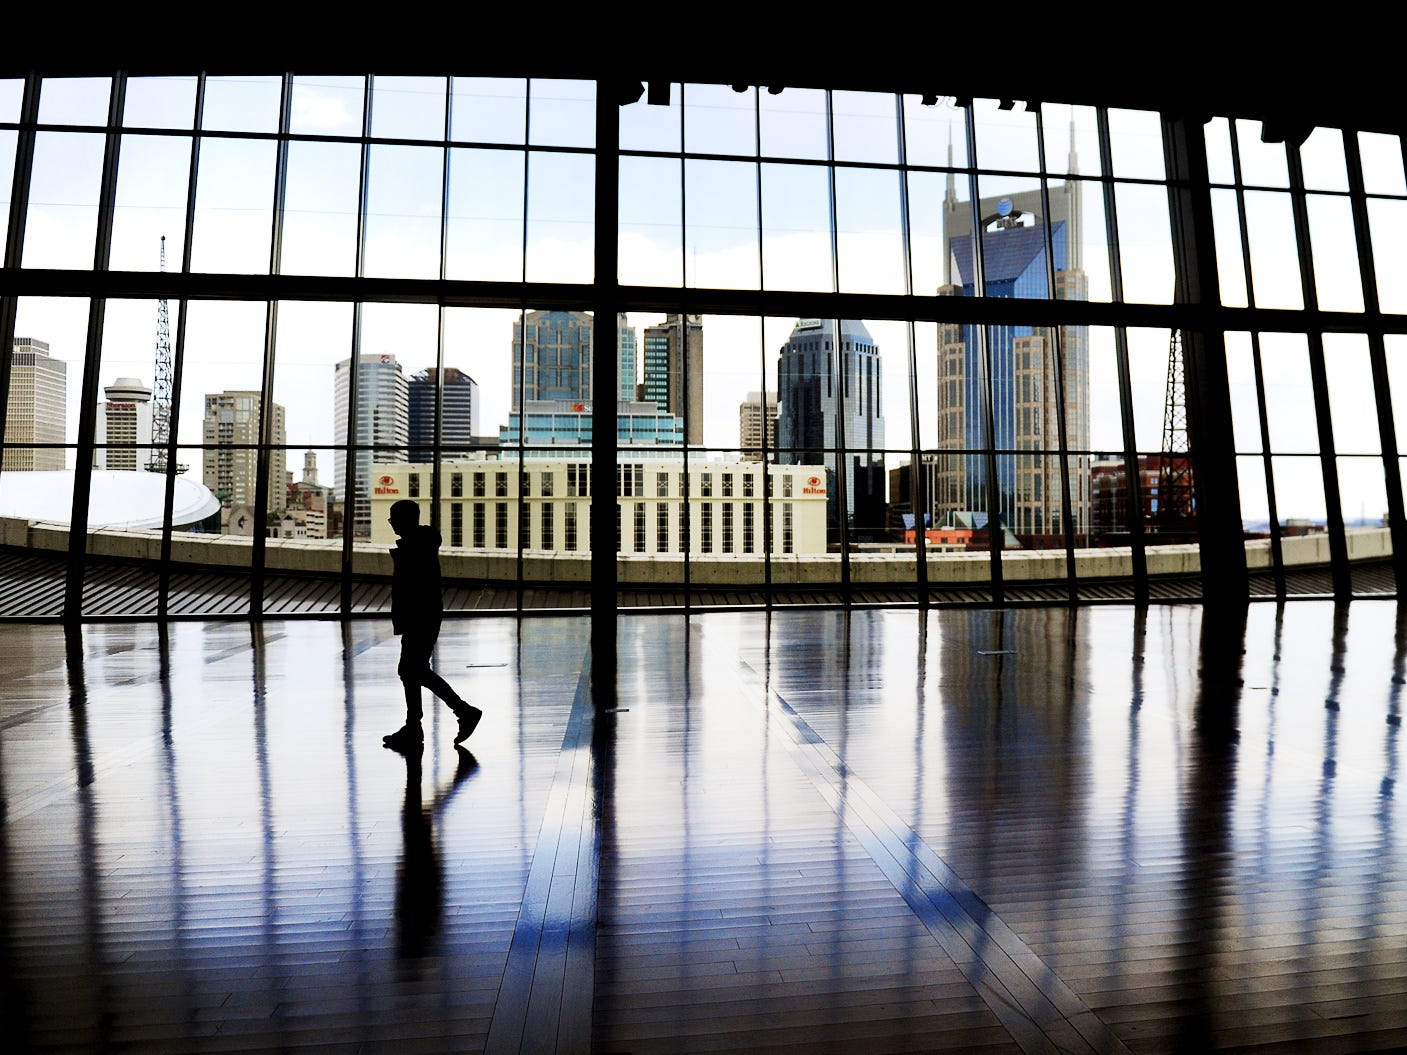 The 10,000-square-foot space of the Country Music Hall of Fame's Event Hall feature floor-to-ceiling windows with a massive view of the Nashville skyline as seen here March 25, 2014.